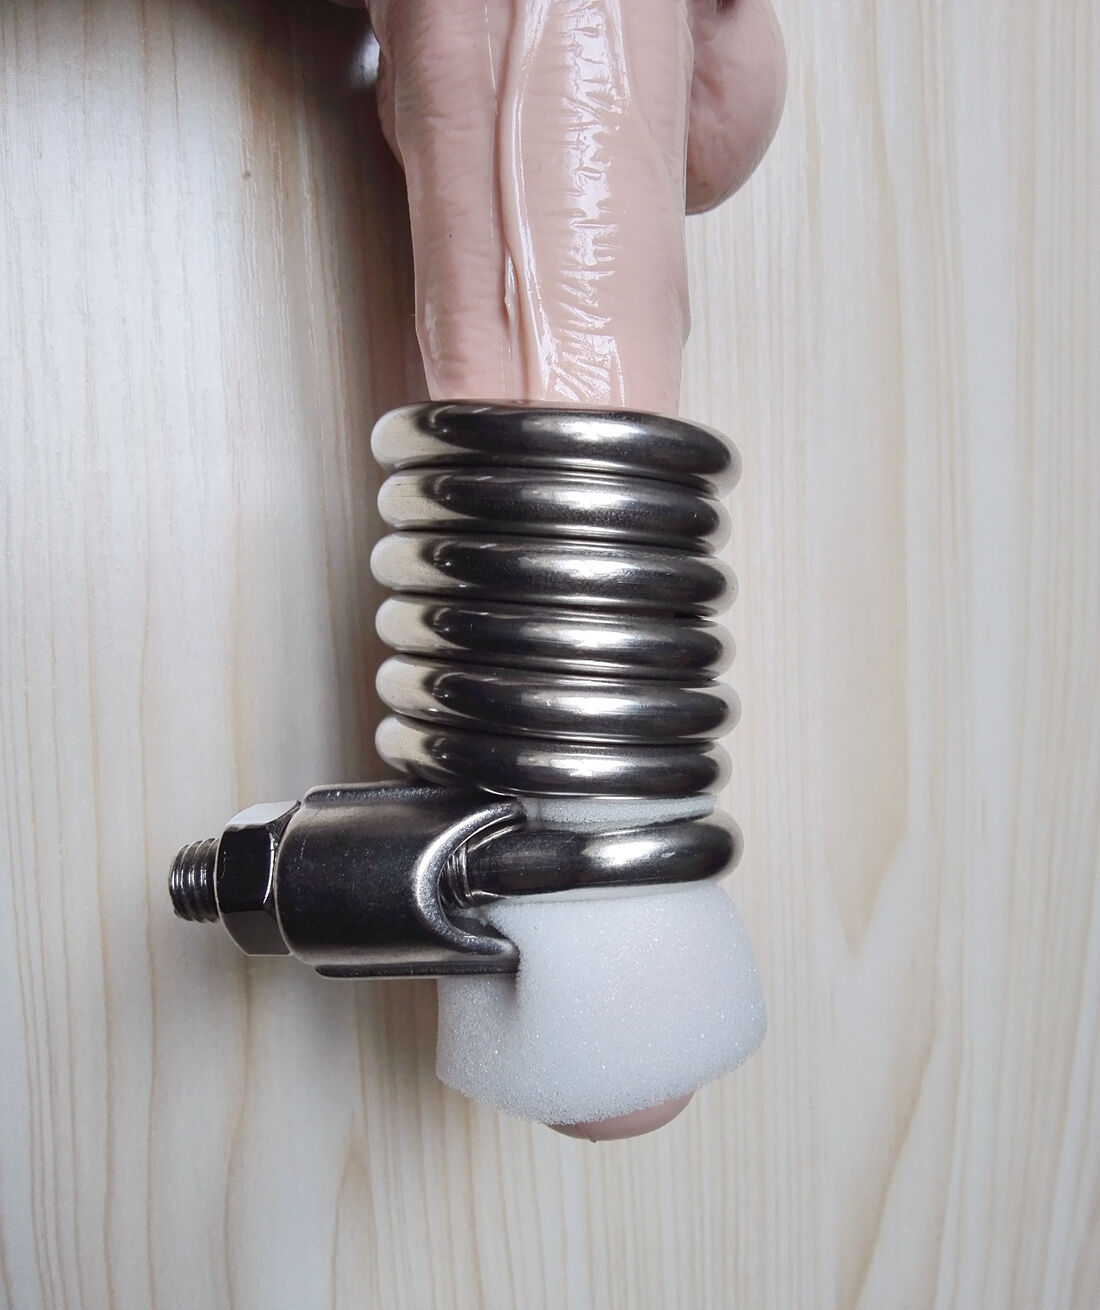 12 Rings Stainless Steel Male Penis Extender Enlargement System Enlarger Stretch  Ebay-7543